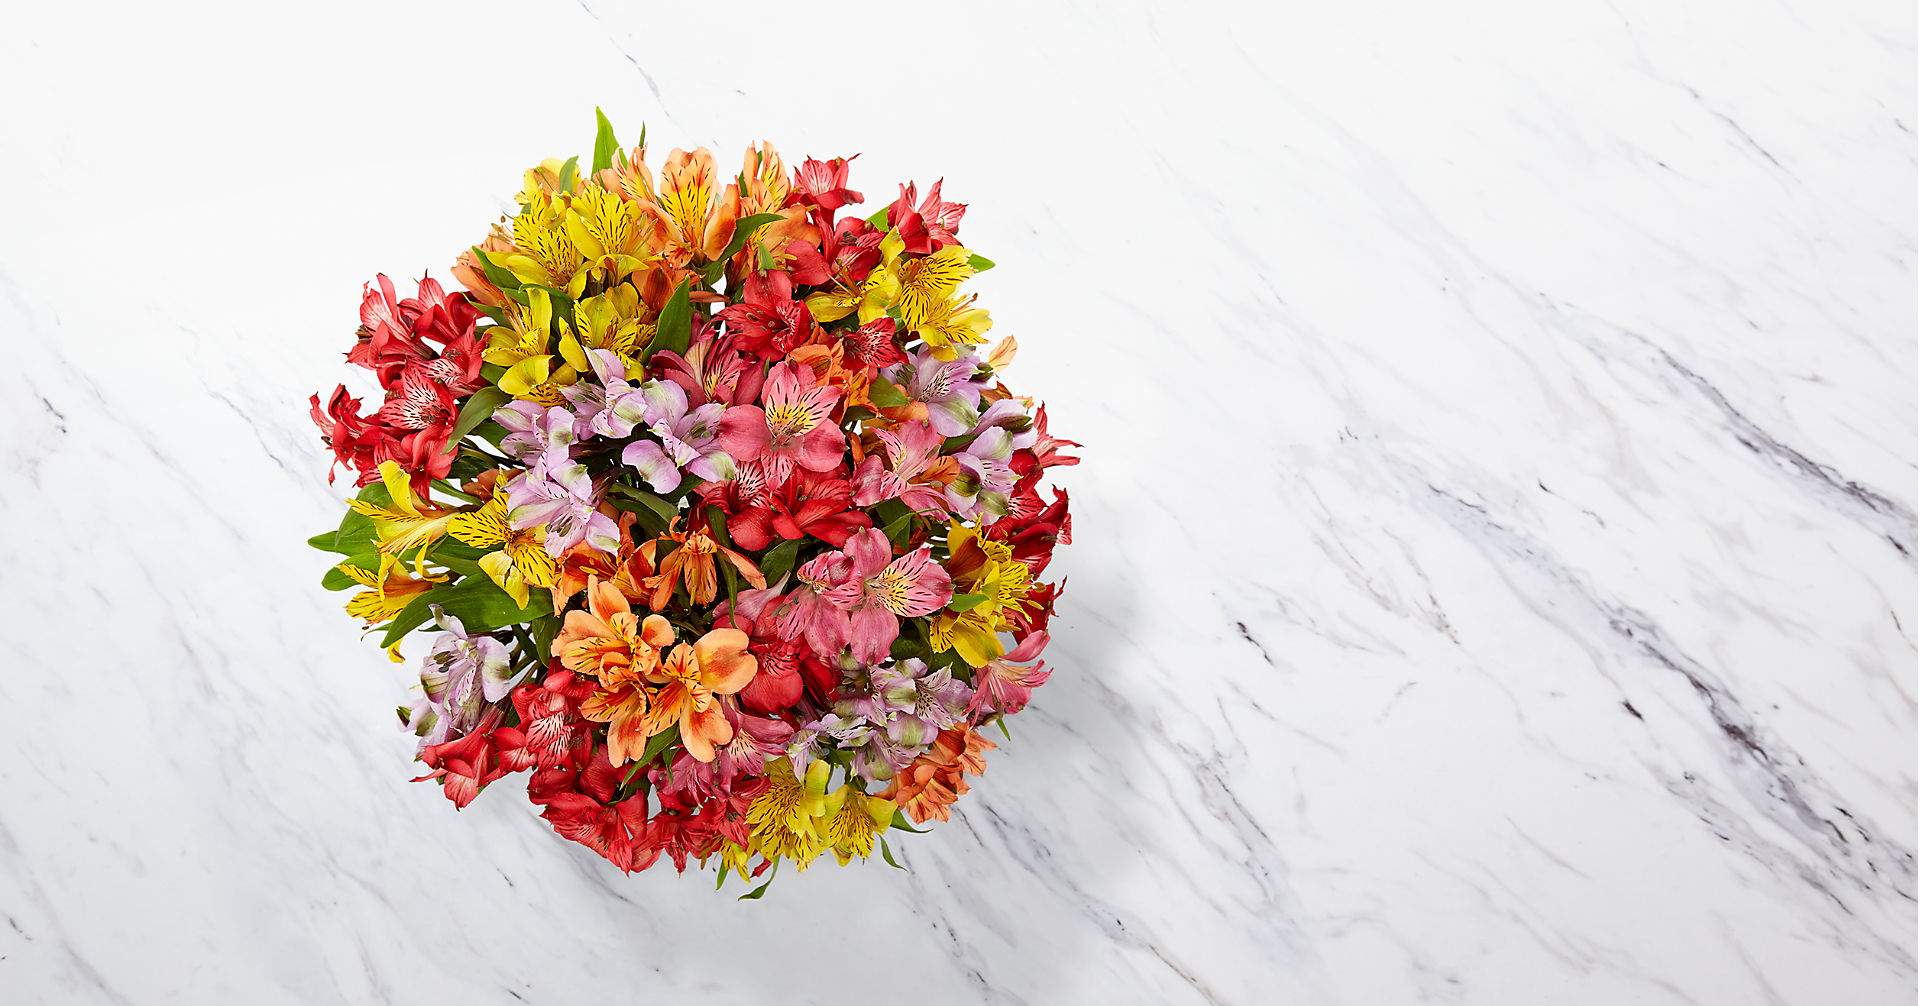 Rainbow Discovery Peruvian Lily Bouquet - Image 3 Of 5